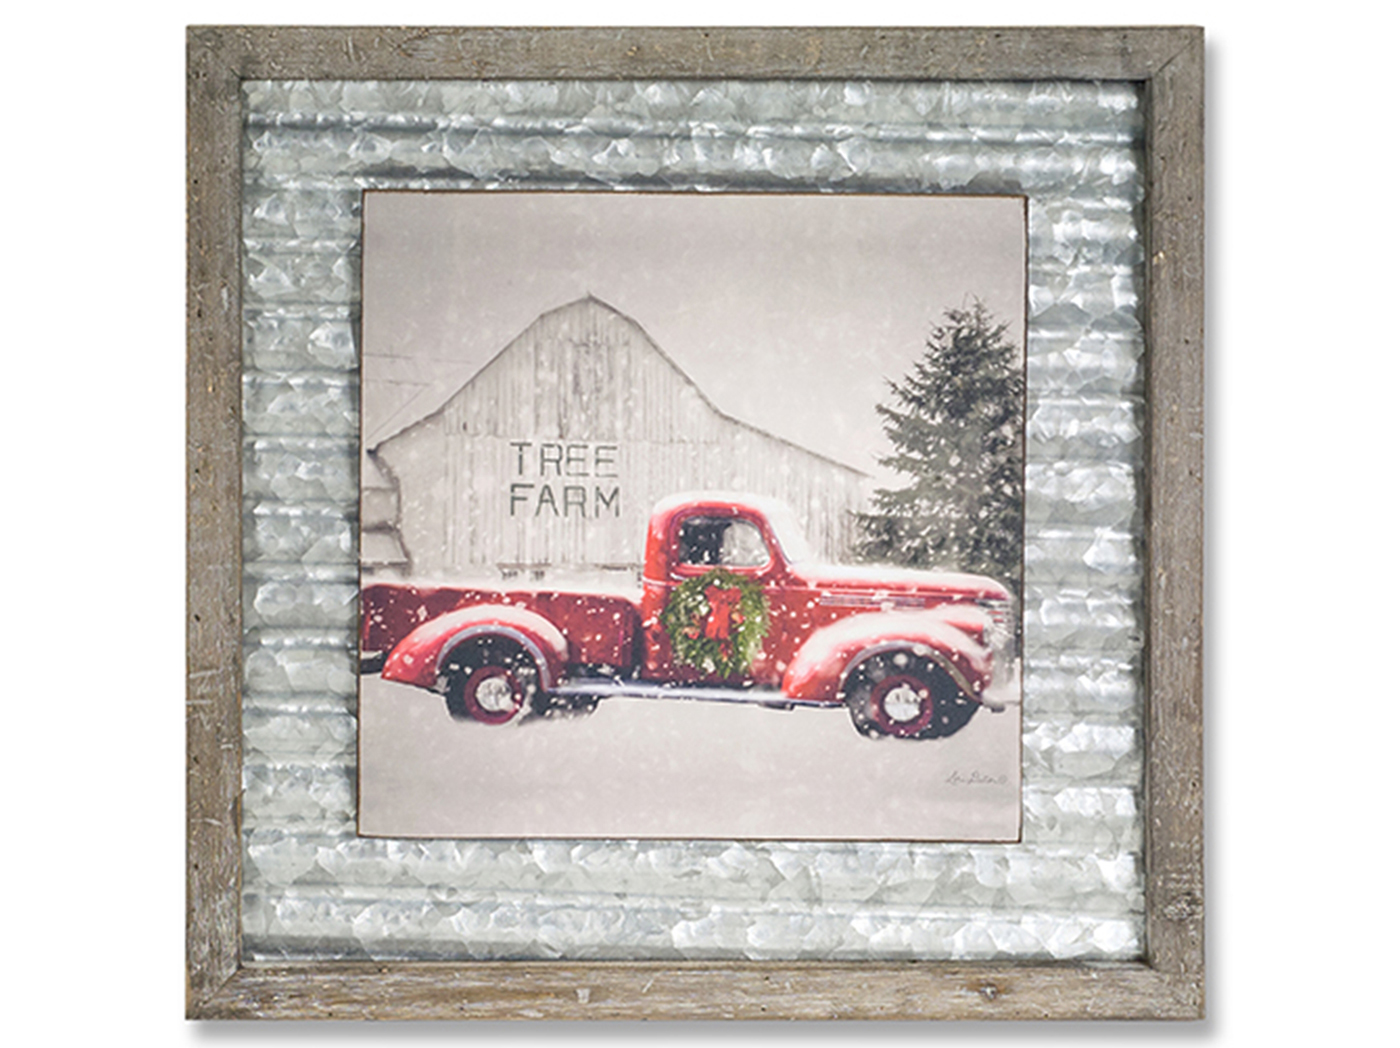 Metal and Wood Tree Farm Plaque 18""